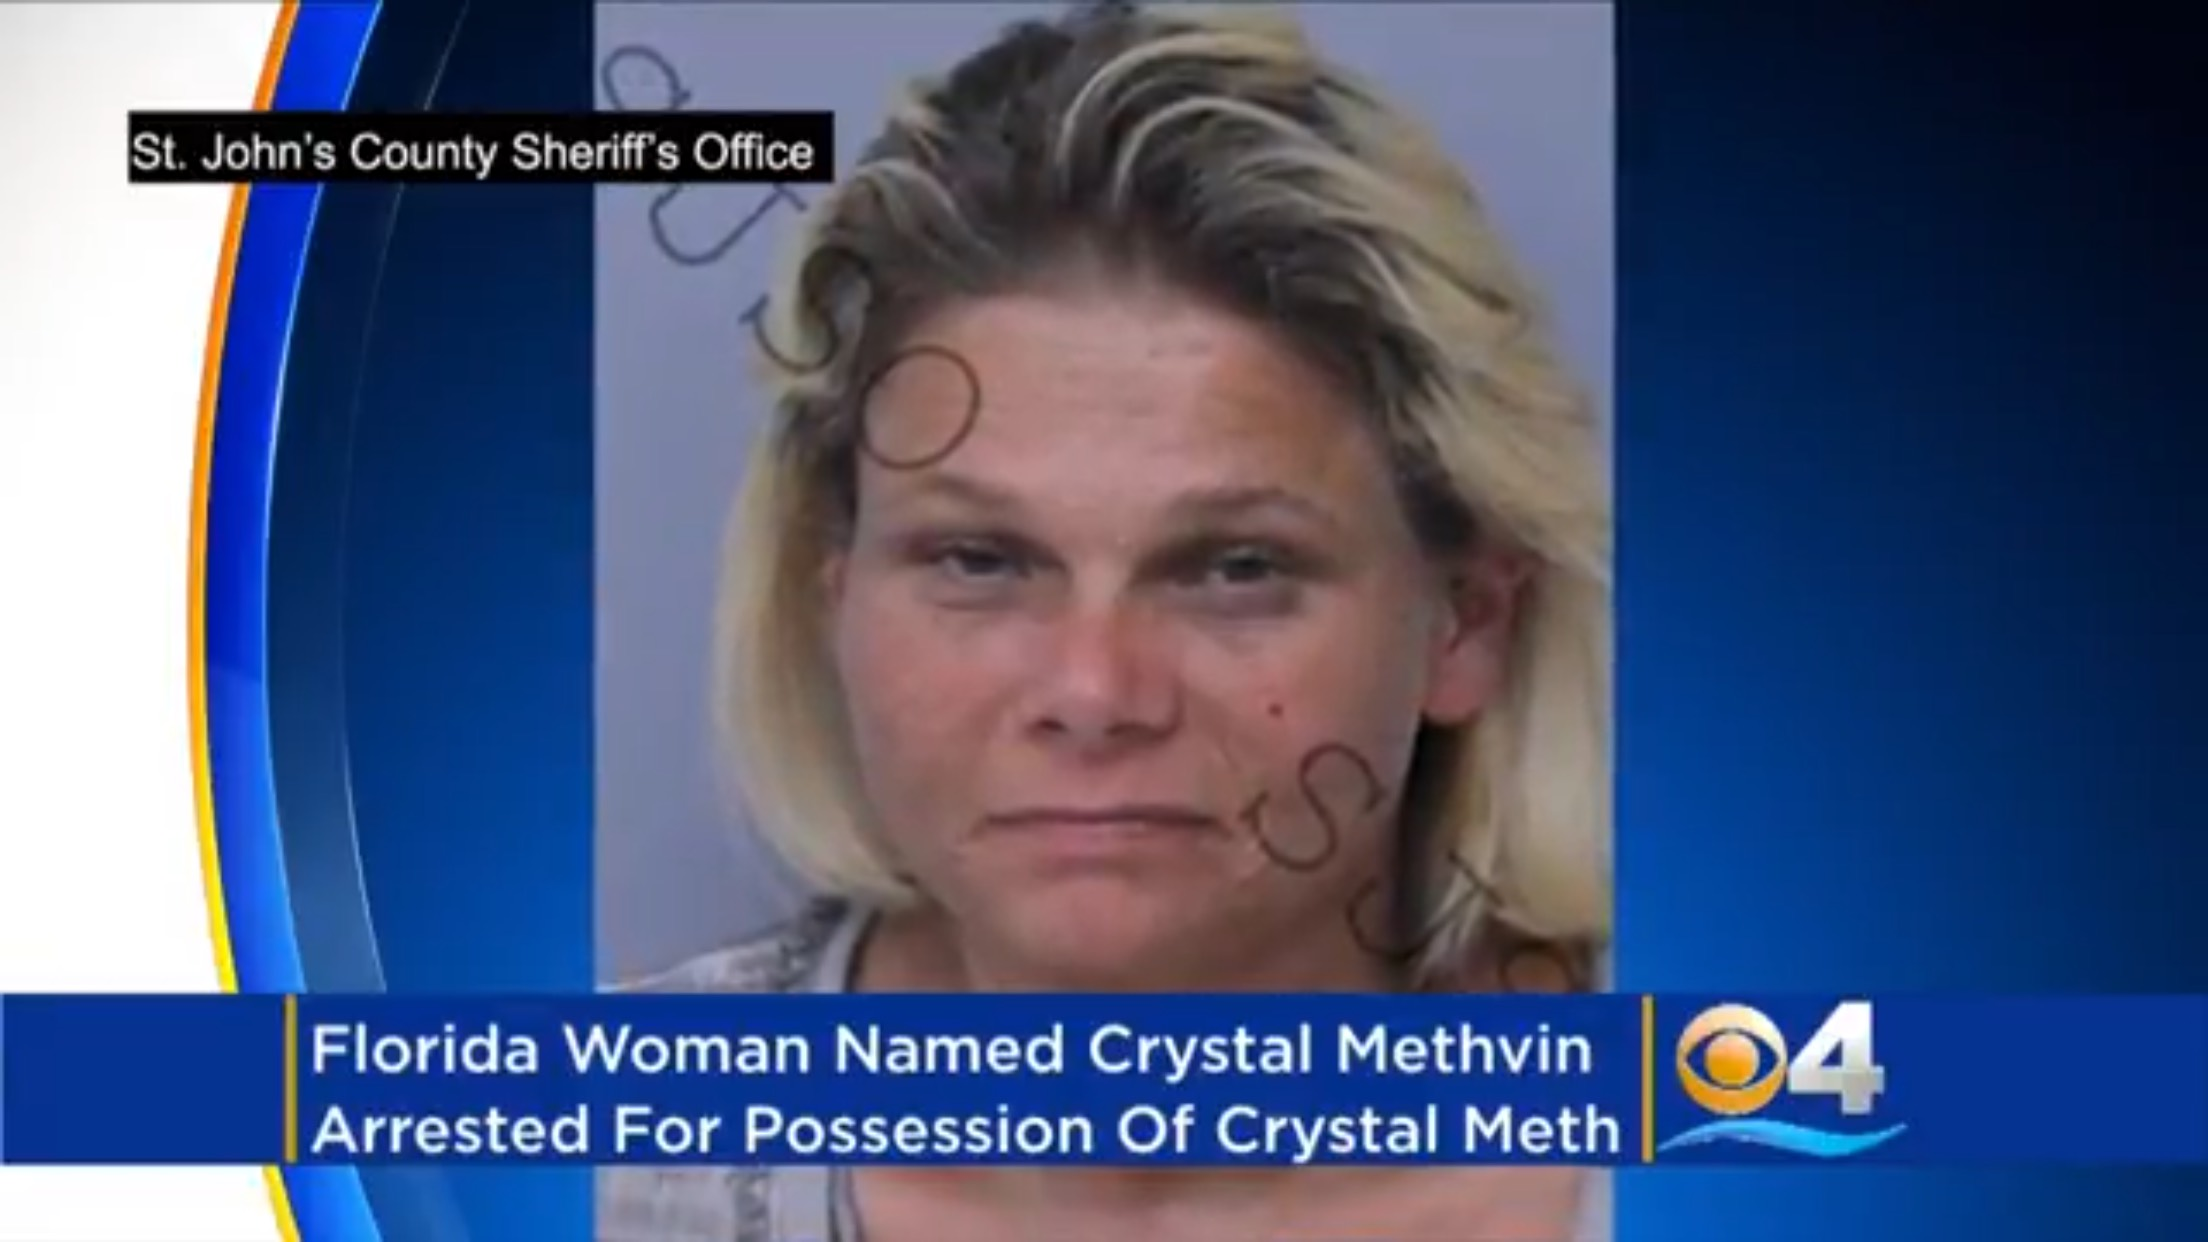 Florida Woman Named Crystal Methvin Arrested For Possession Of Crystal Meth